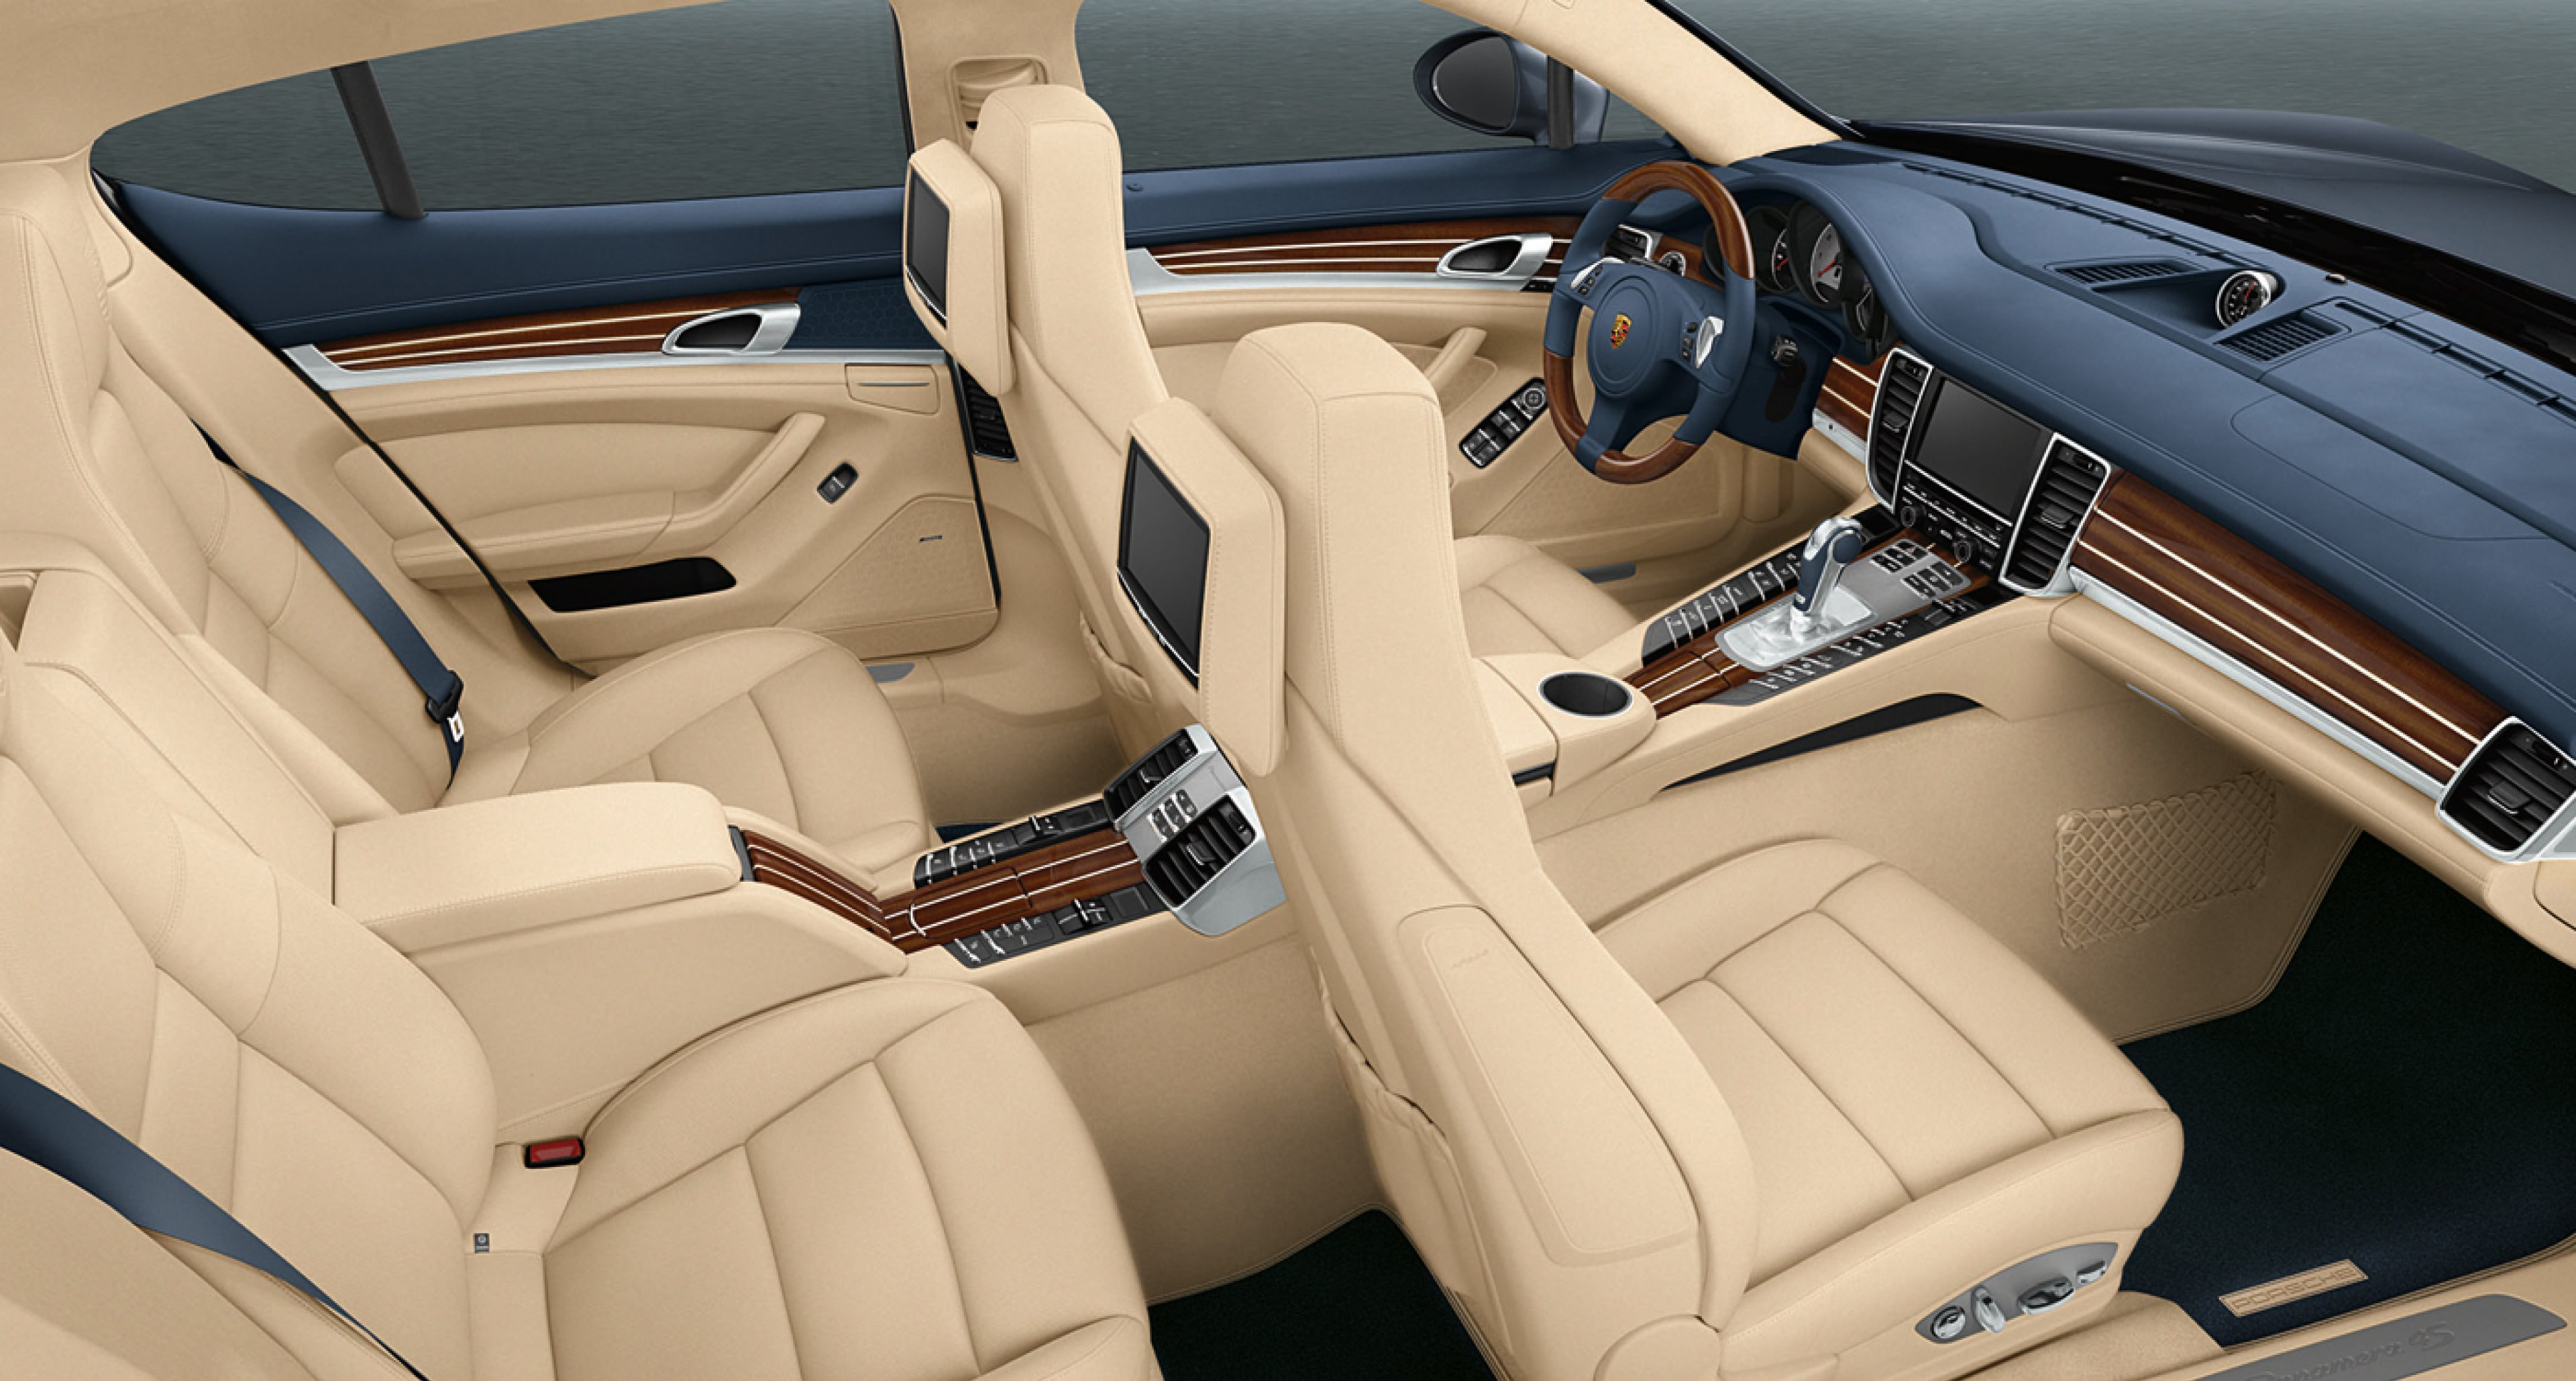 A 2009 Porsche Panamera with a yachting-inspired mahogany interior by 'Porsche Exclusive'.